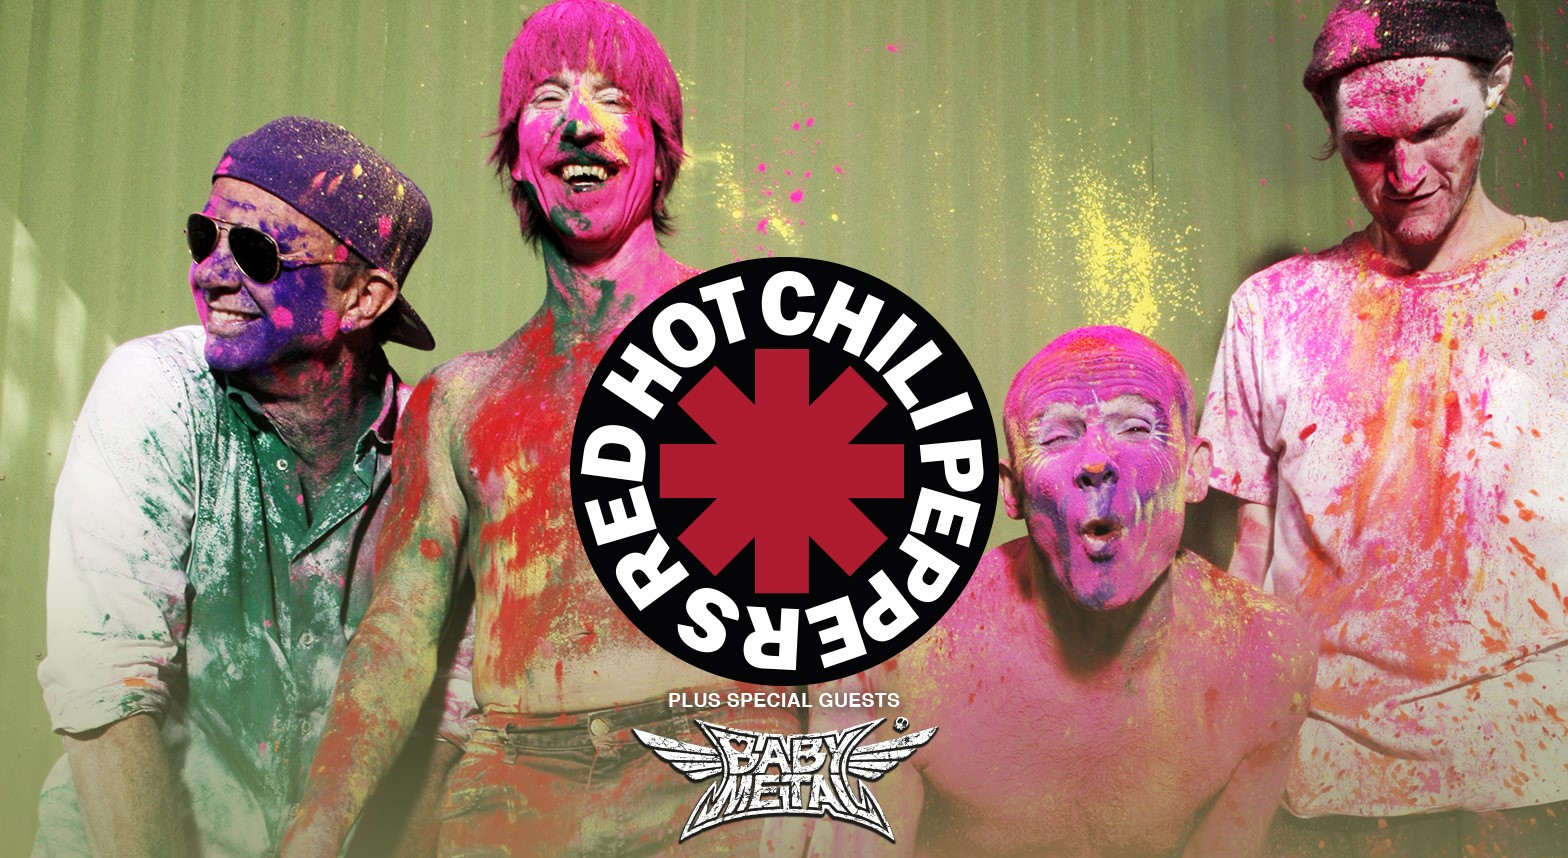 The Red Hot Chili Peppers Uk Tour